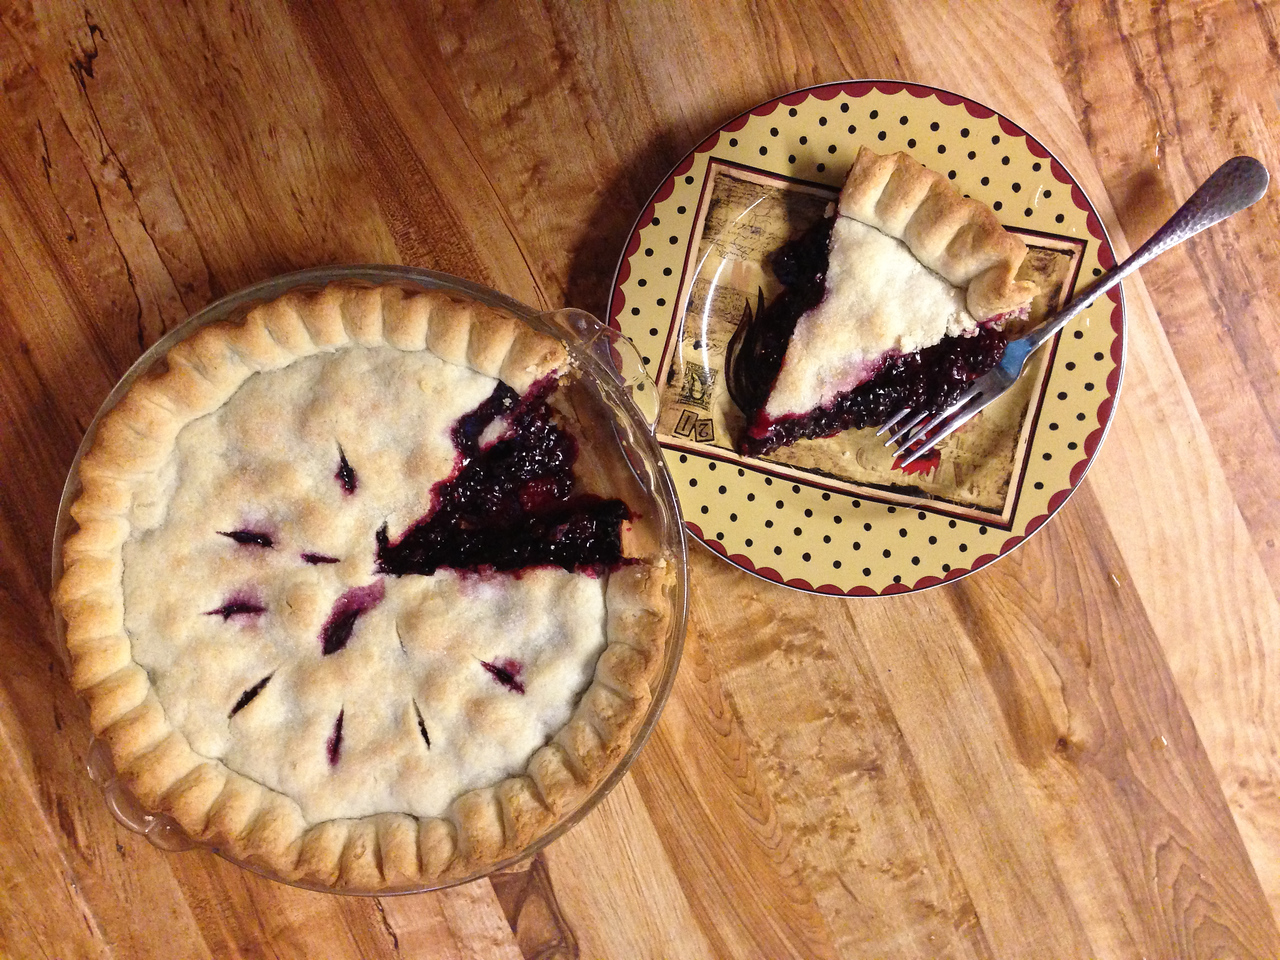 And we capped off the weekend with the first blackberry pie of the season.